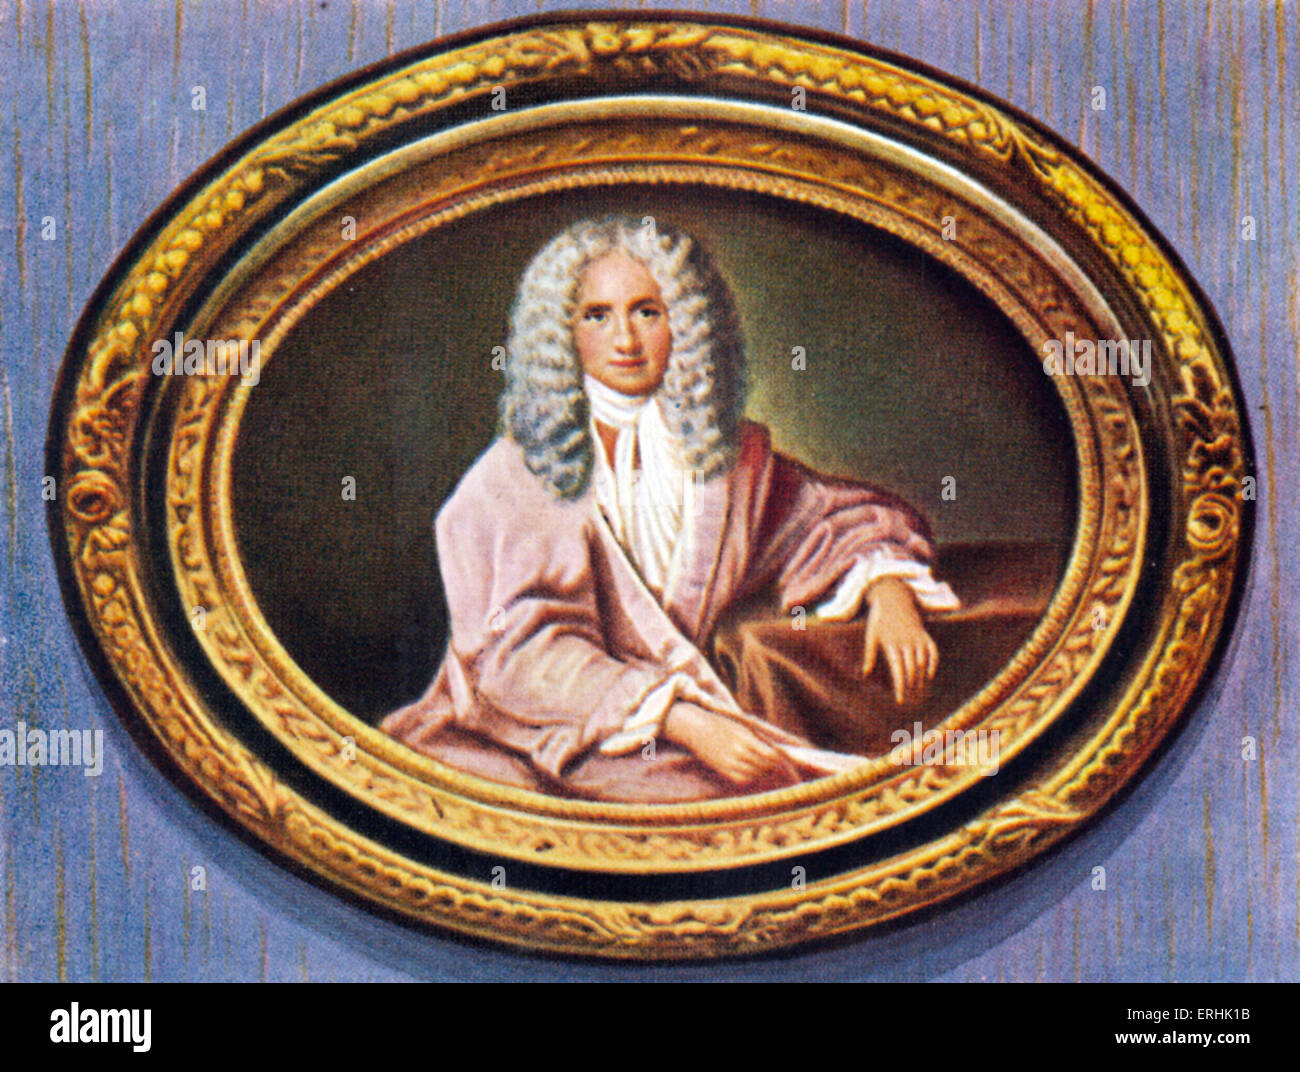 Voltaire. Portrait of the French writer and philosopher. Born as François-Marie Arouet. 21 November 1694 – 30 May 1778 Stock Photo